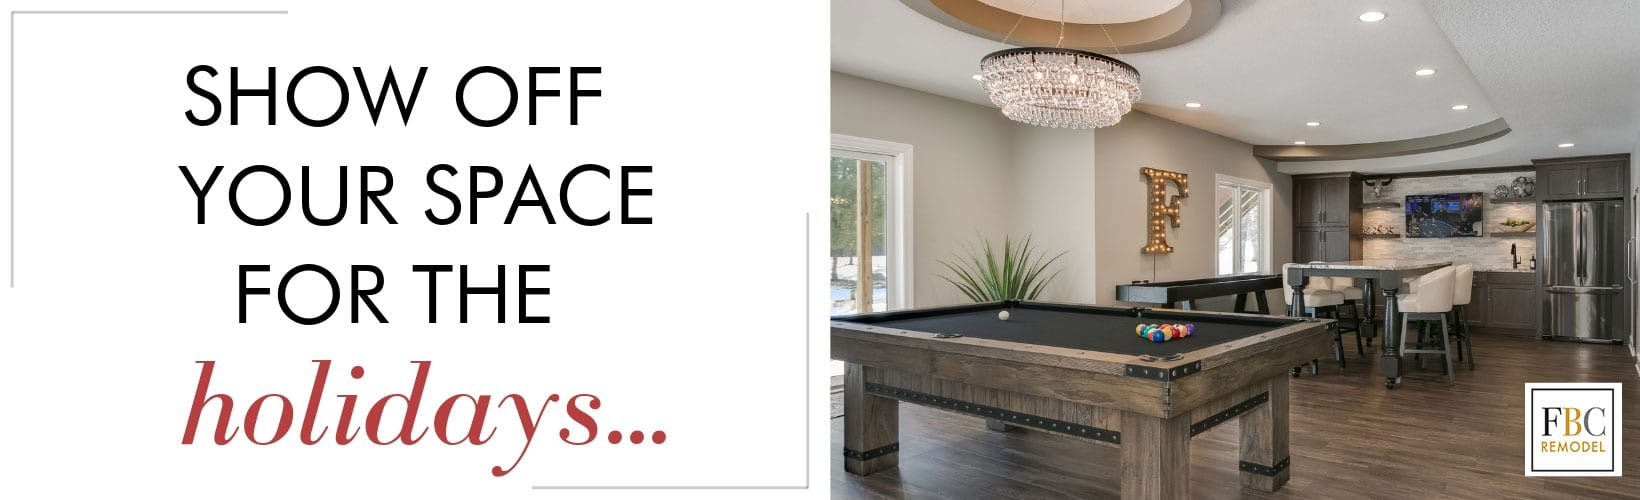 display your space for the holidays with fbc remodel